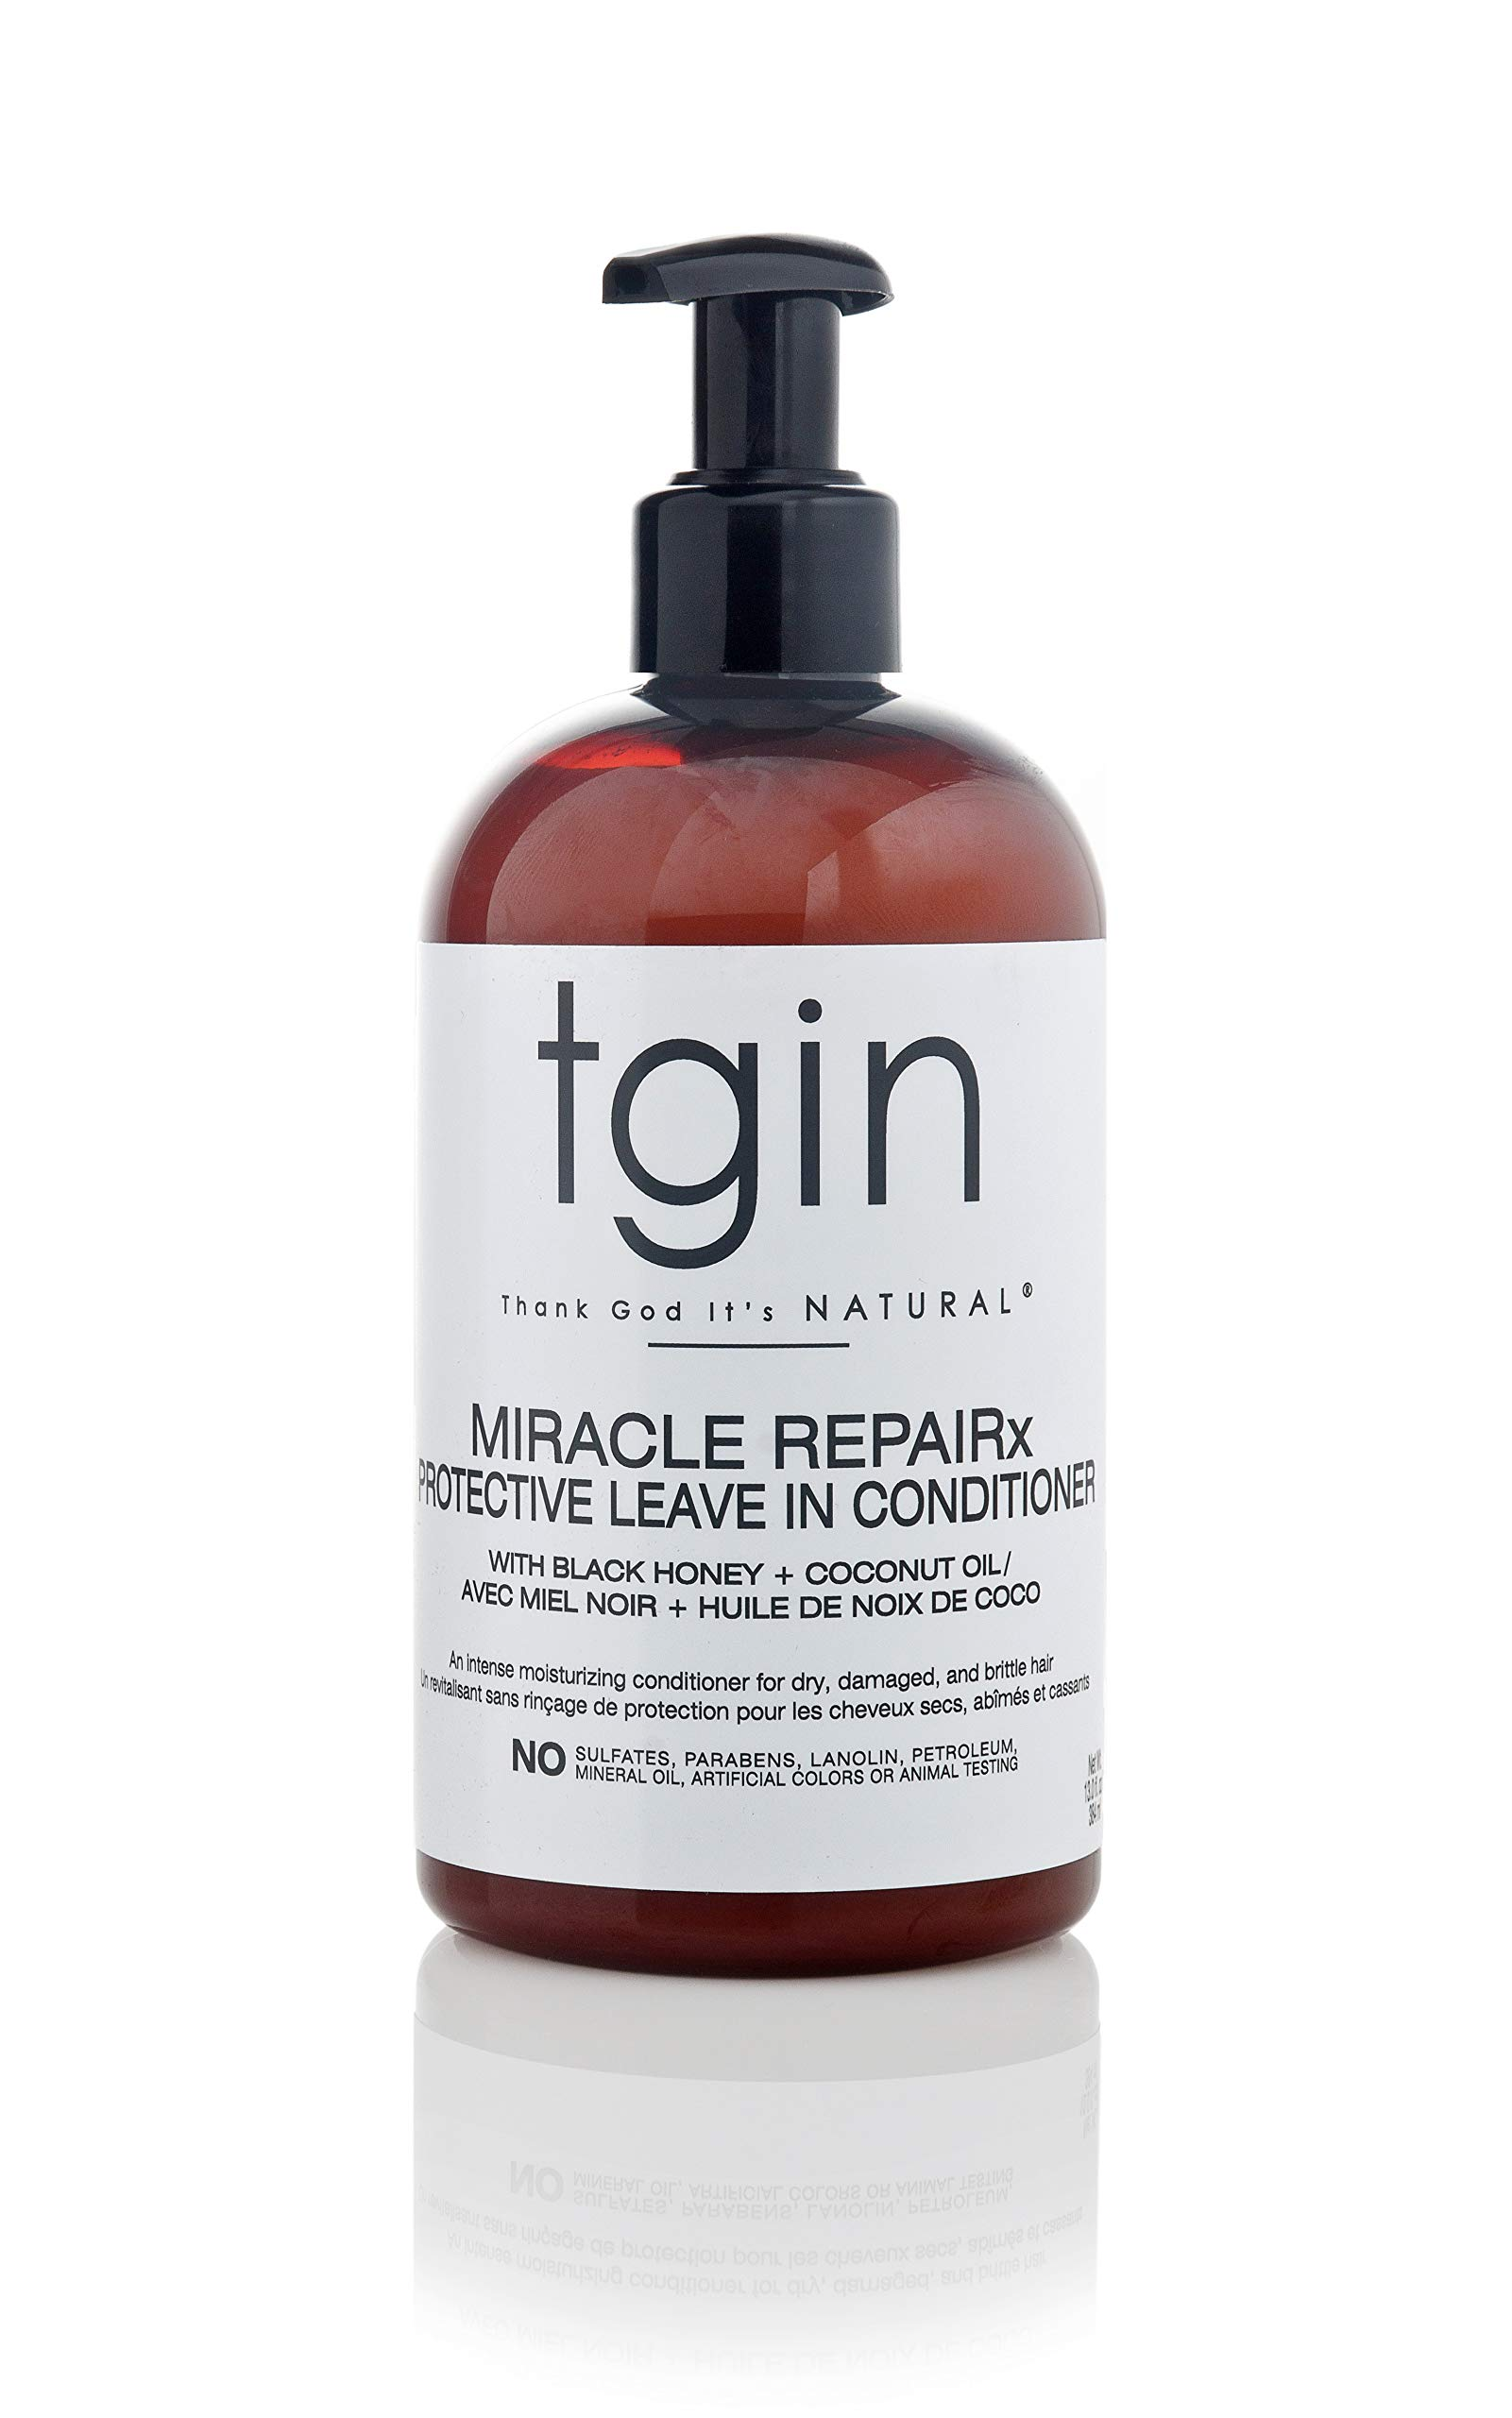 tgin Miracle Repairx Protective Leave In Conditioner For Natural Hair - Dry Hair - Curly Hair - 13 Oz